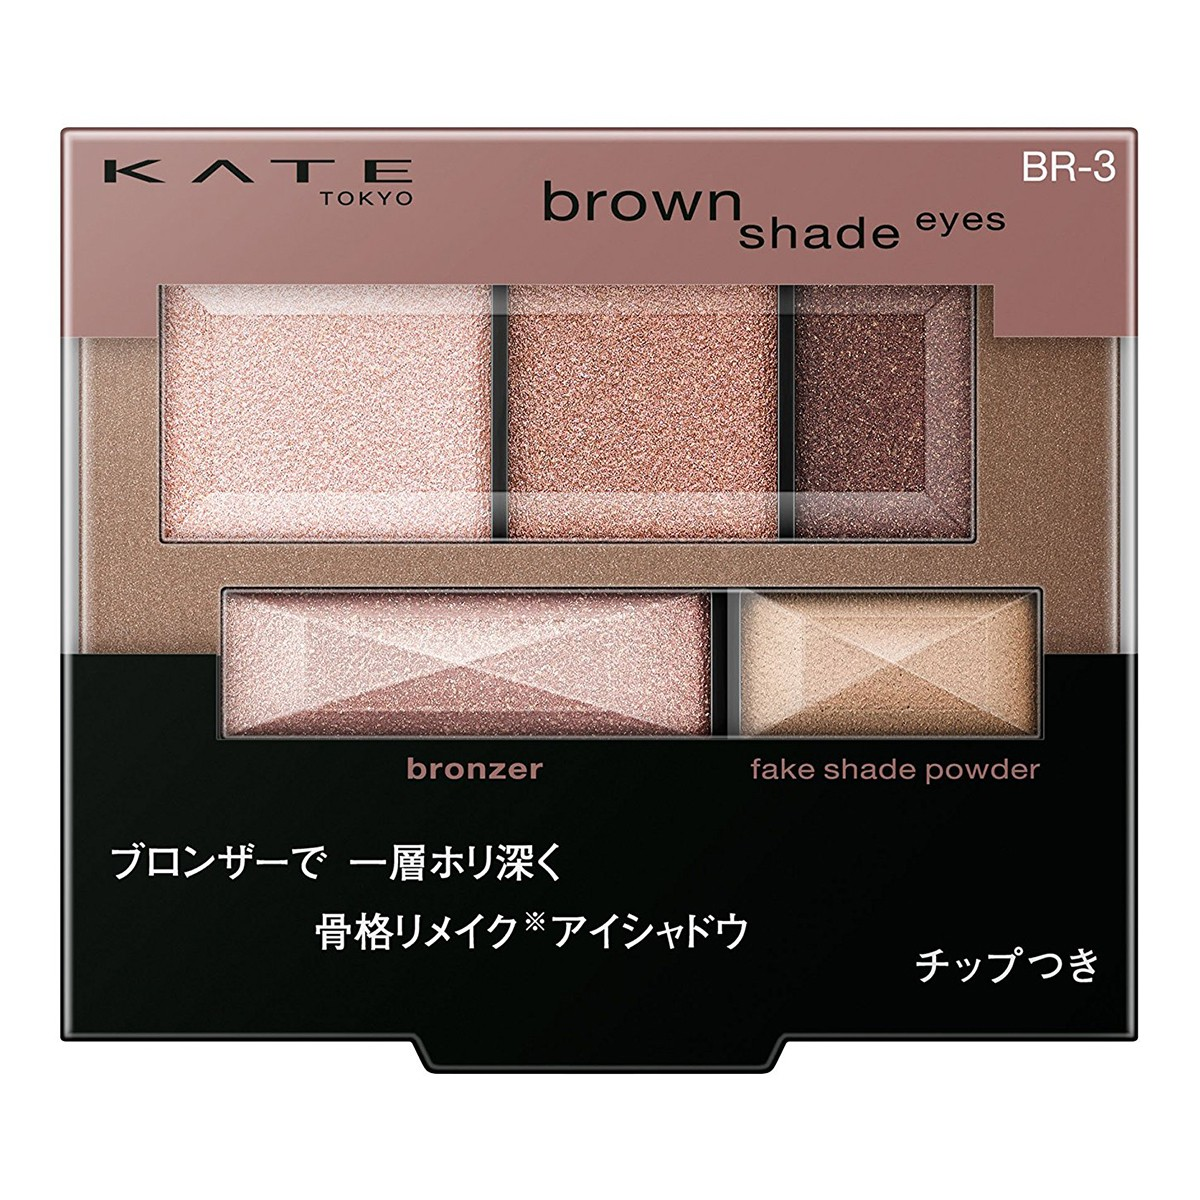 KANEBO KATE Brown Shade Eyes #BR-3 3g